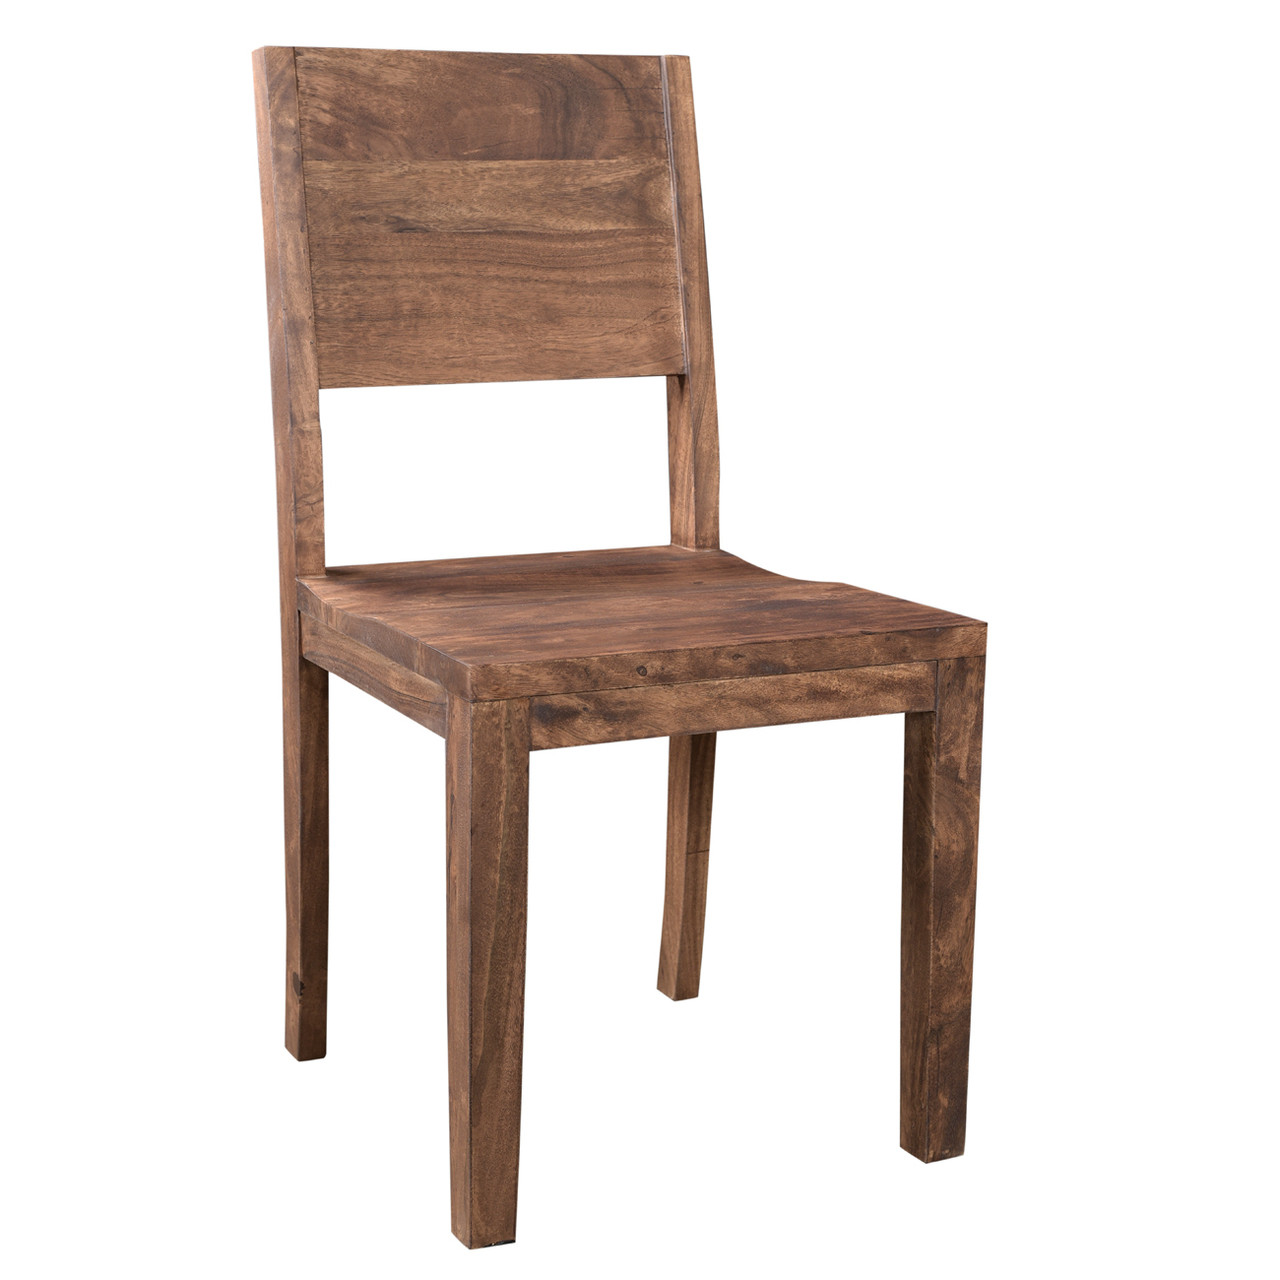 Marvelous Simple Acacia Wood Dining Chair   Set Of 2